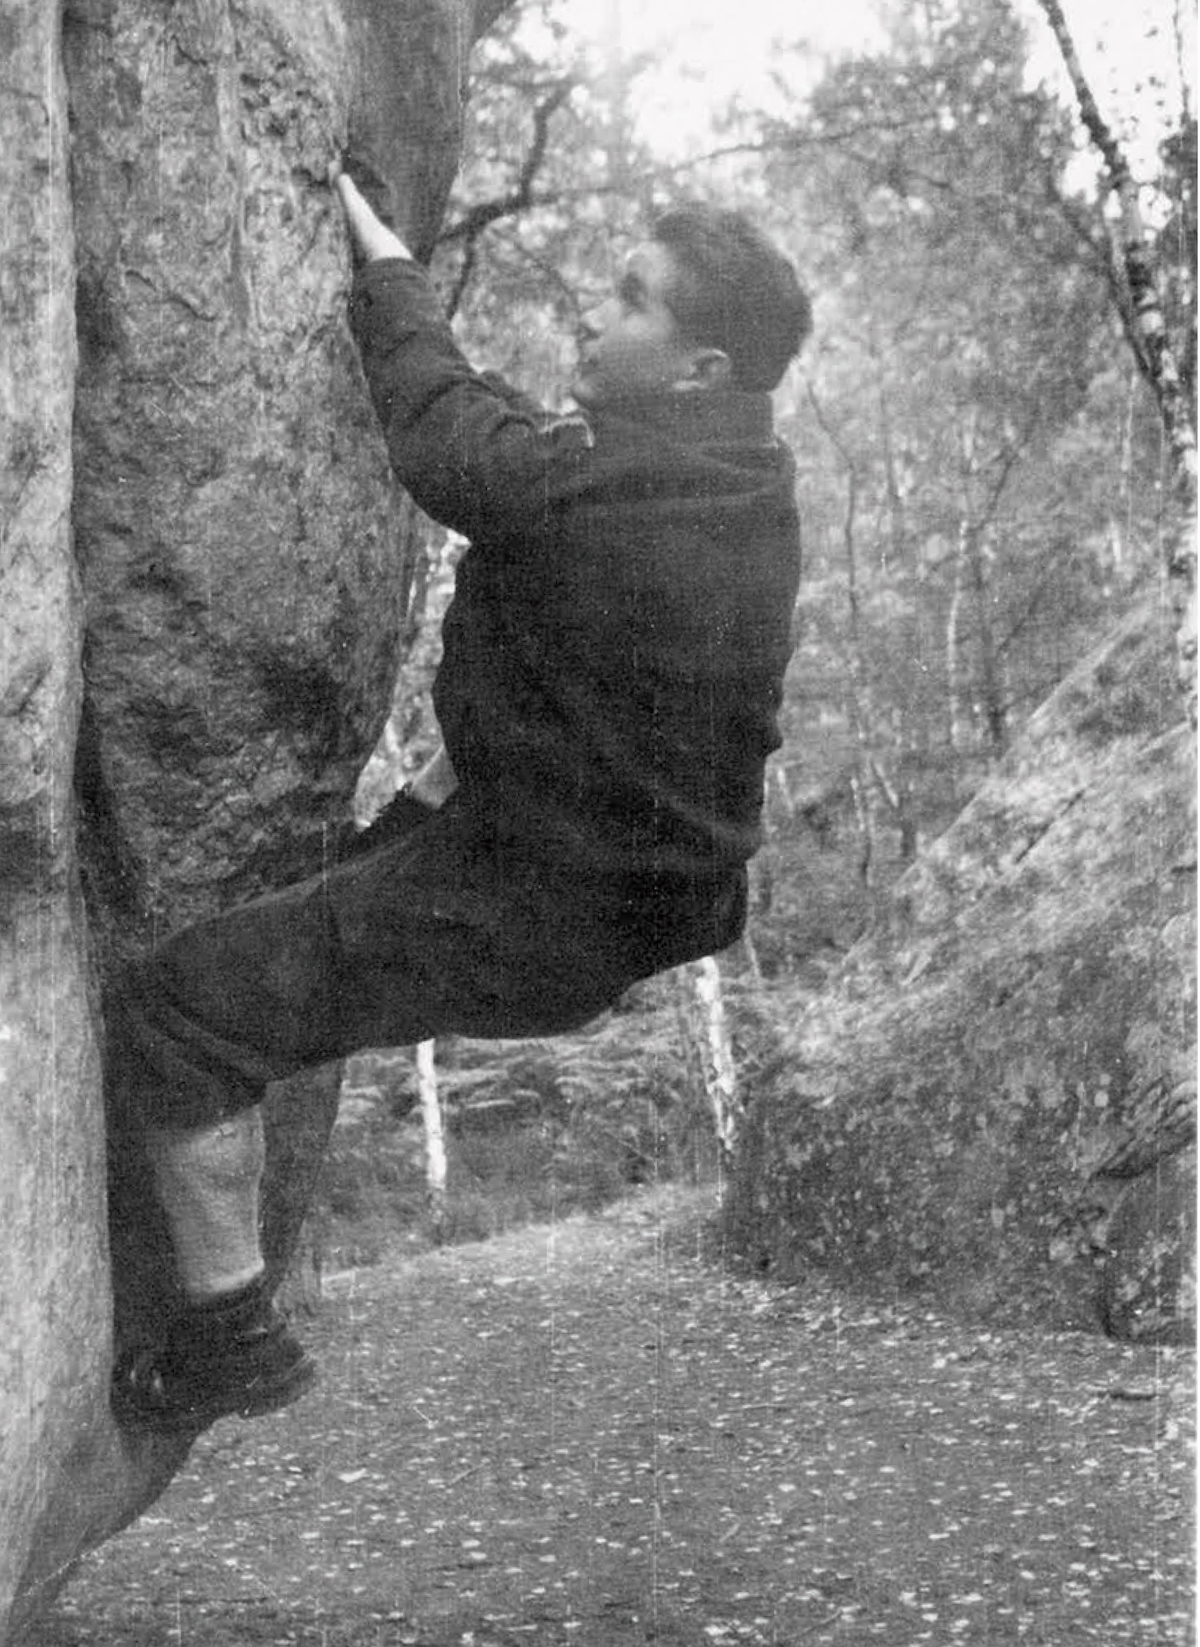 Robert Paragot in 1952 in the Merveille area of Fontainebleau. [Photo] Robert Paragot collection